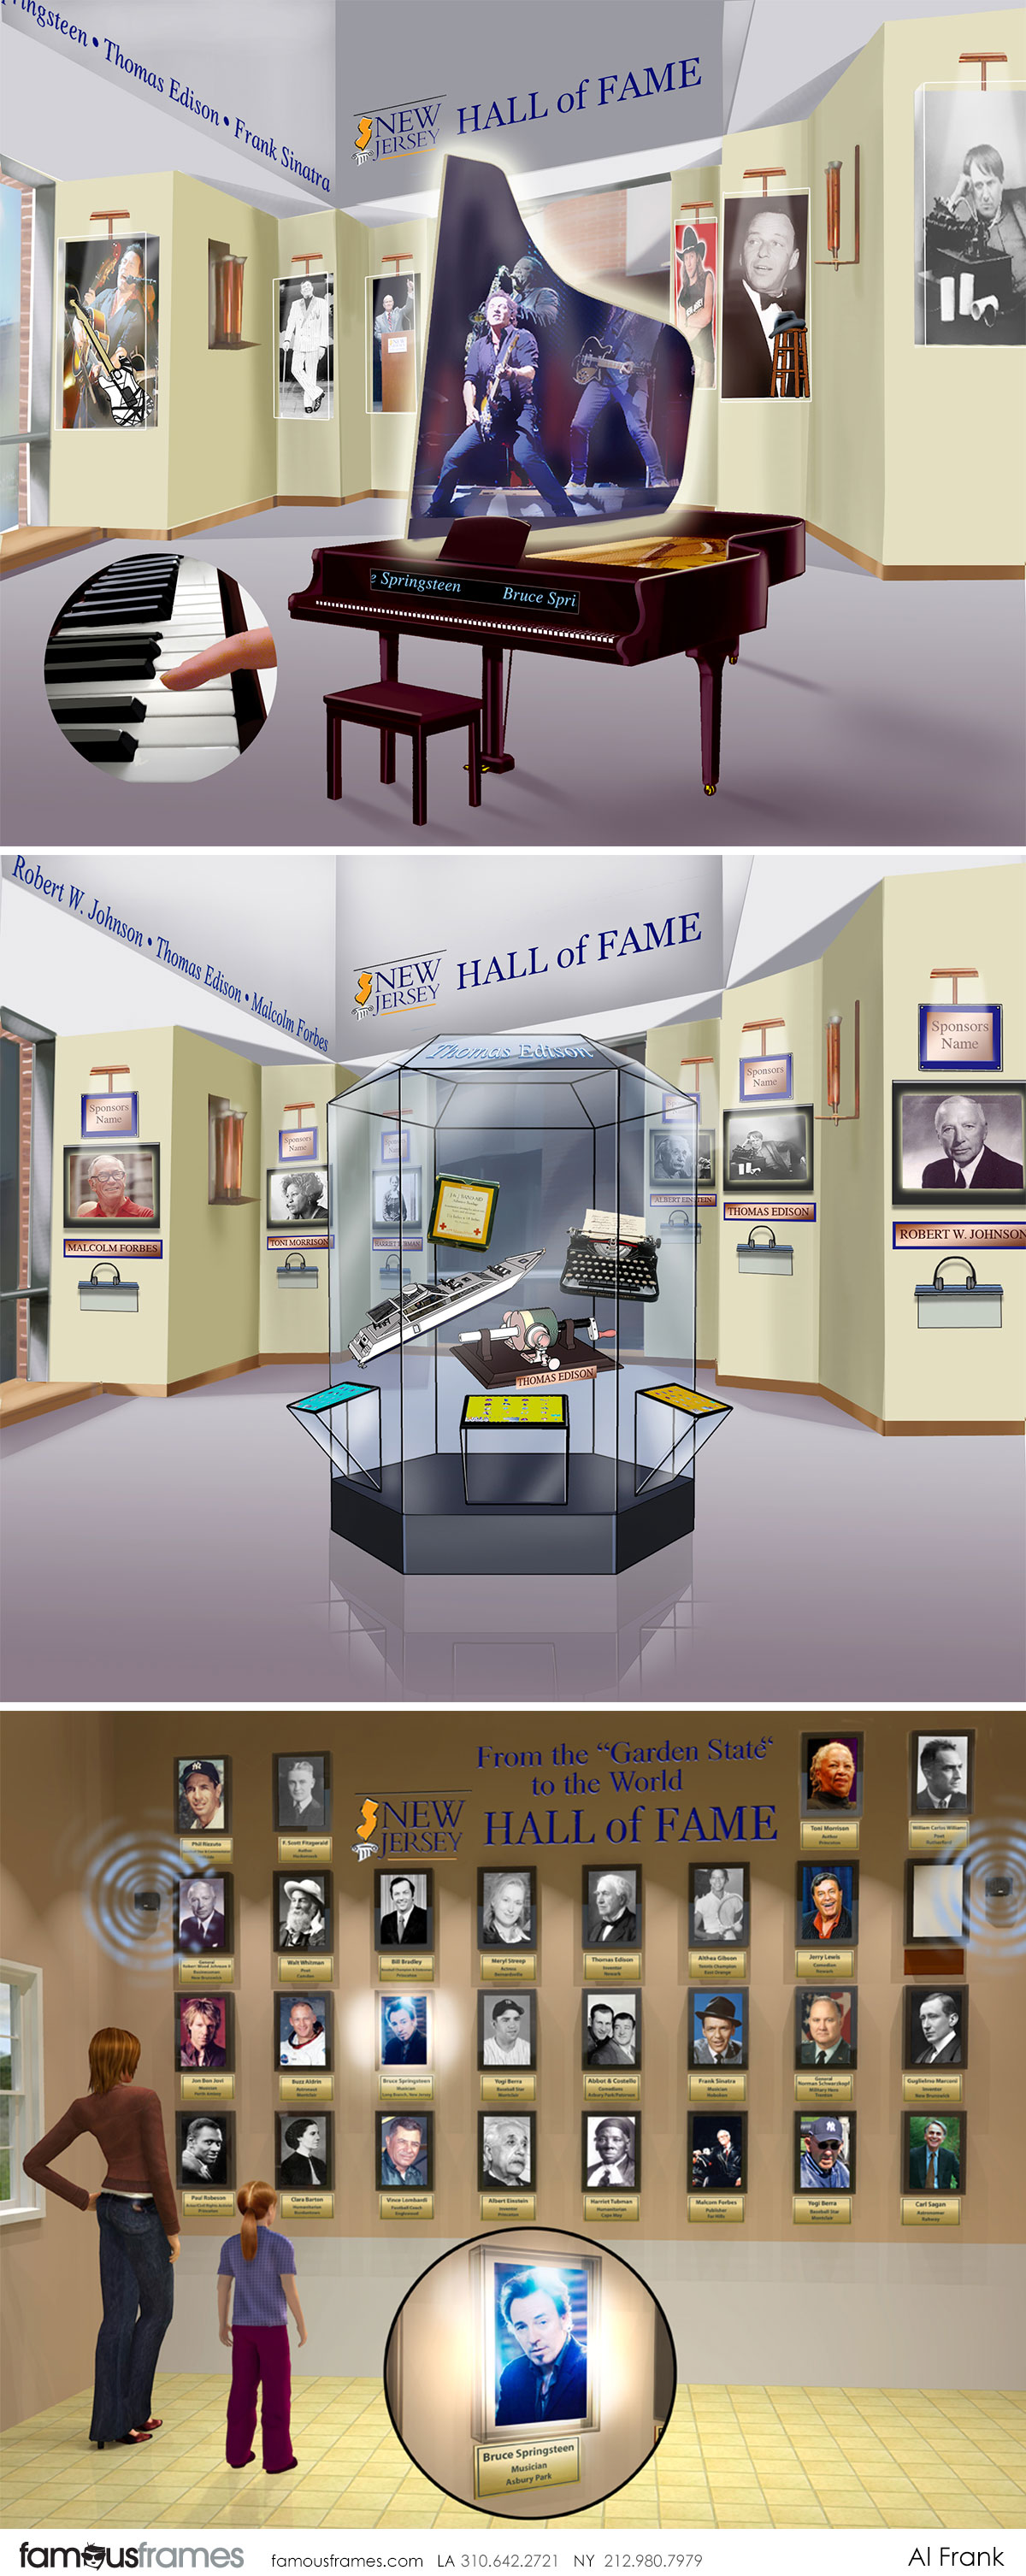 Al Frank's Events / Displays storyboard art (Image #7016_41_1481833160)